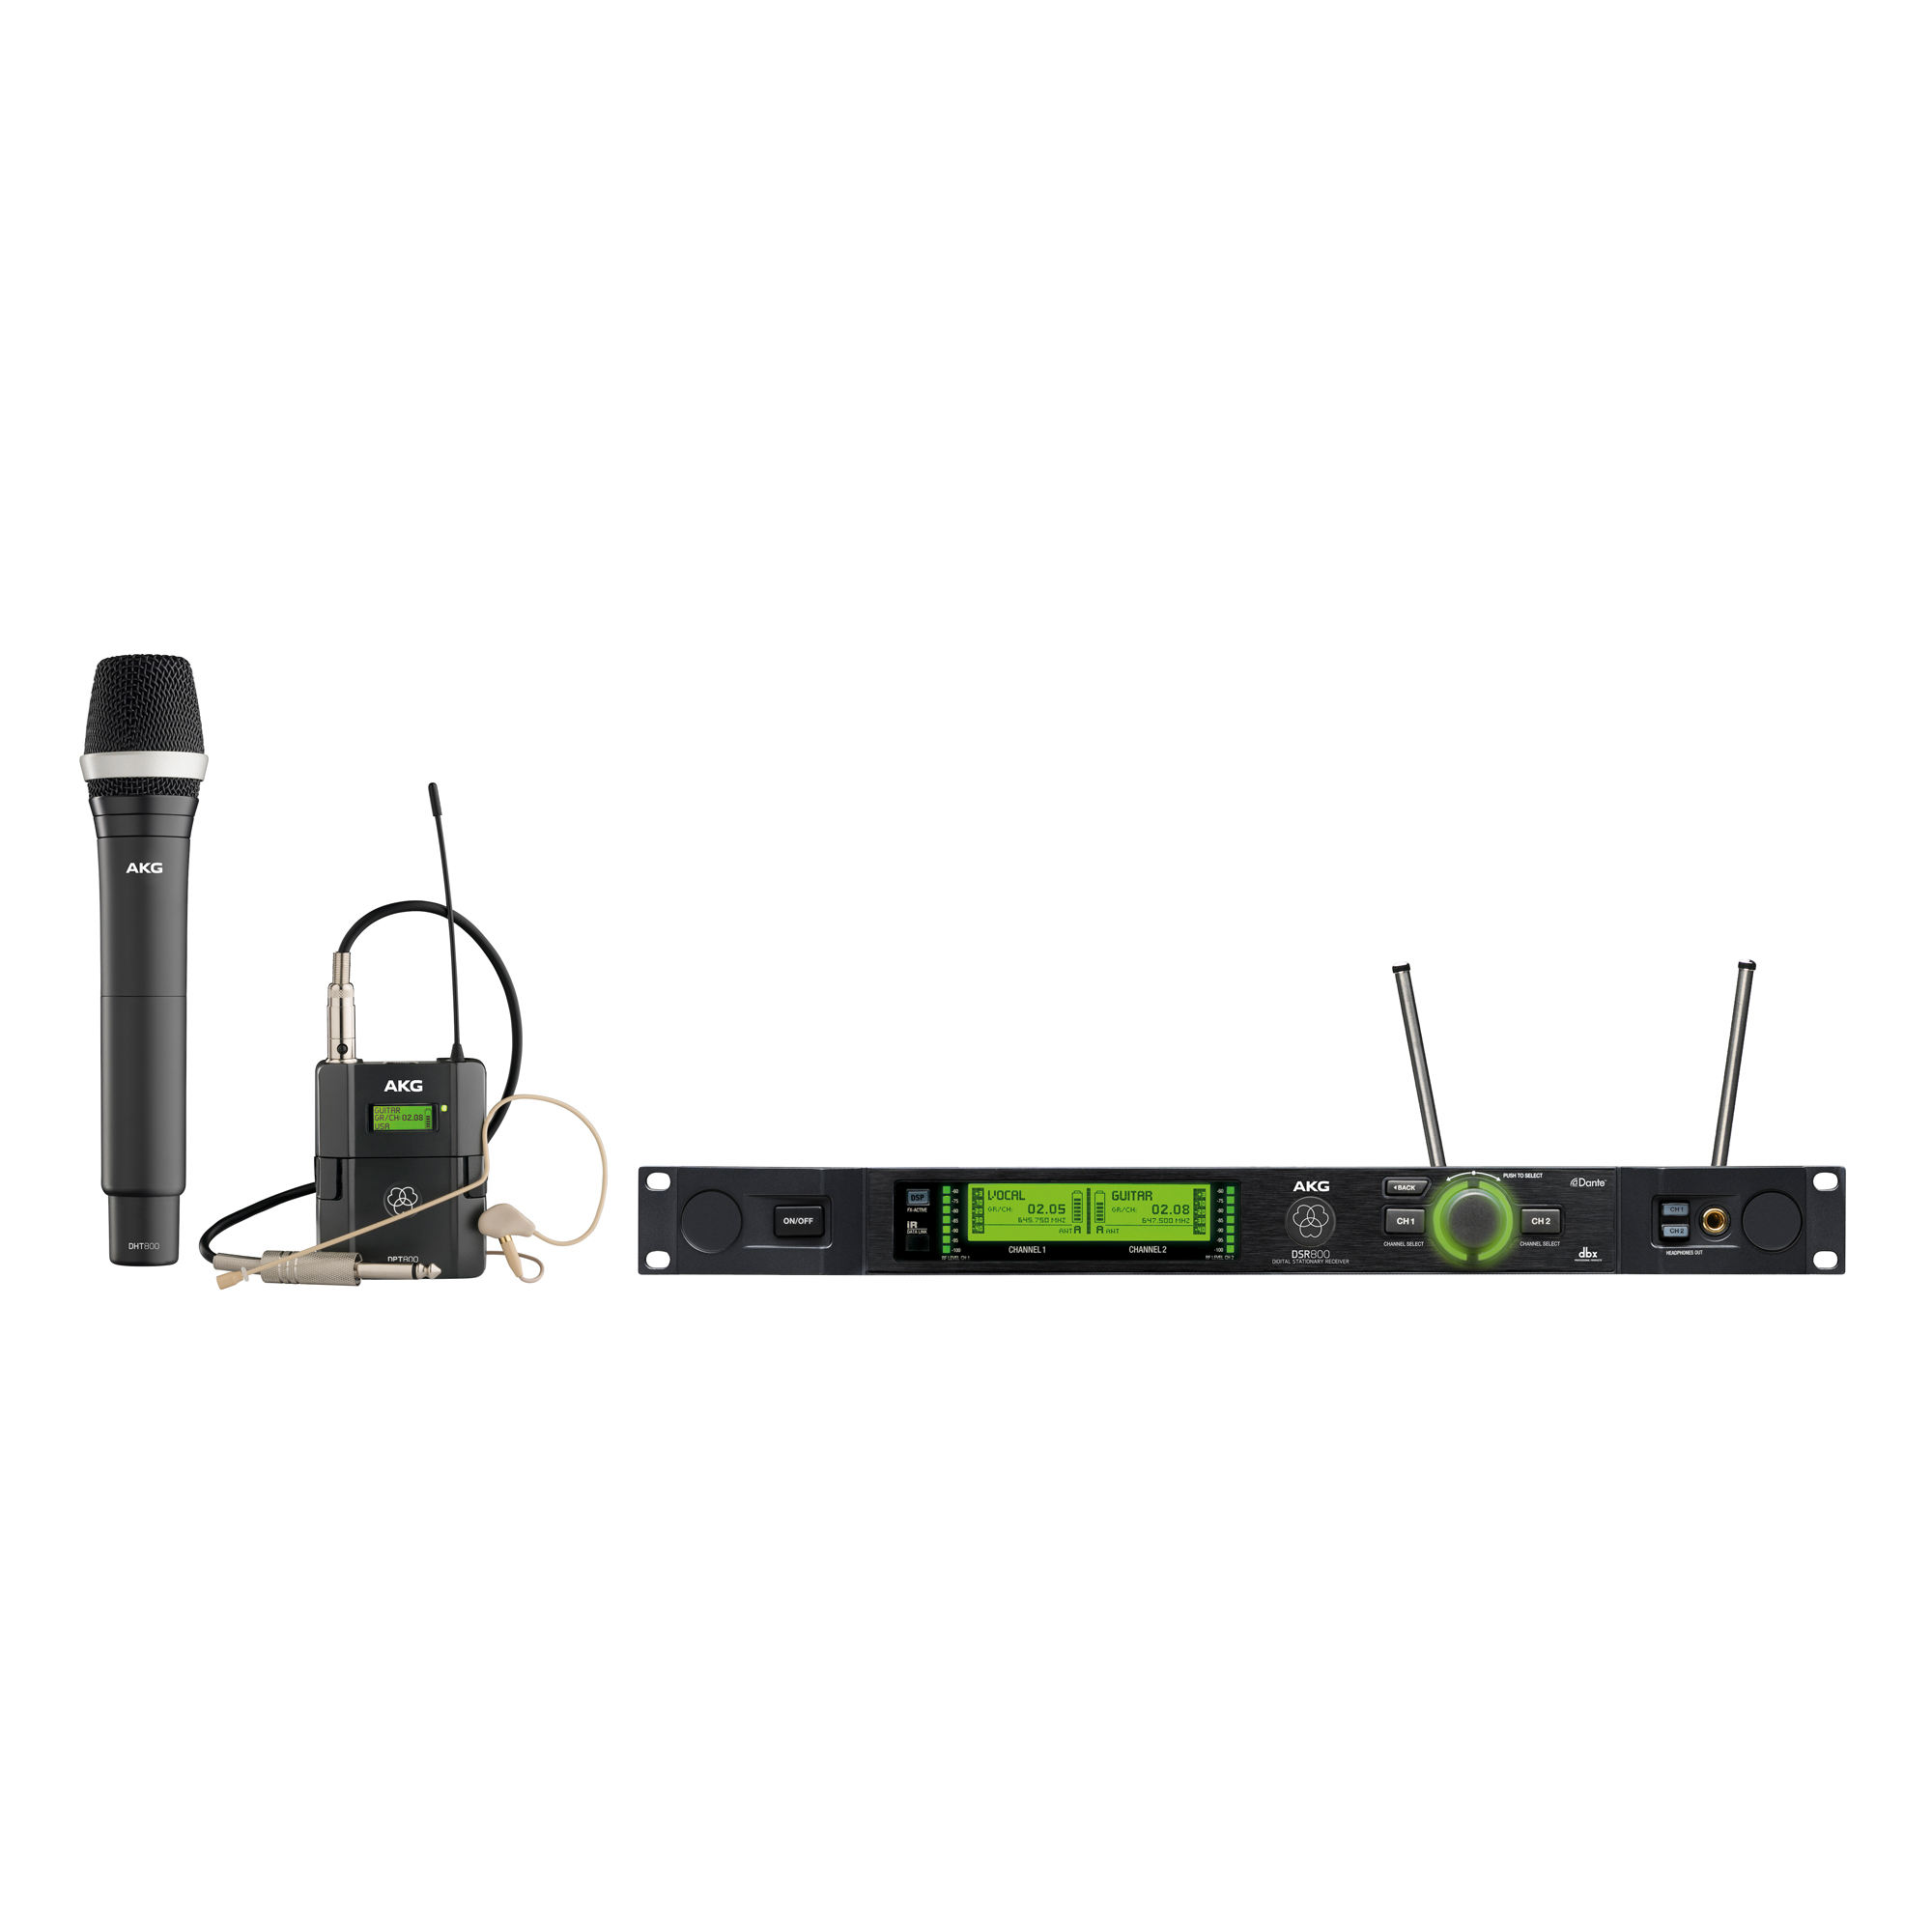 Reference Digital Wireless Microphone System